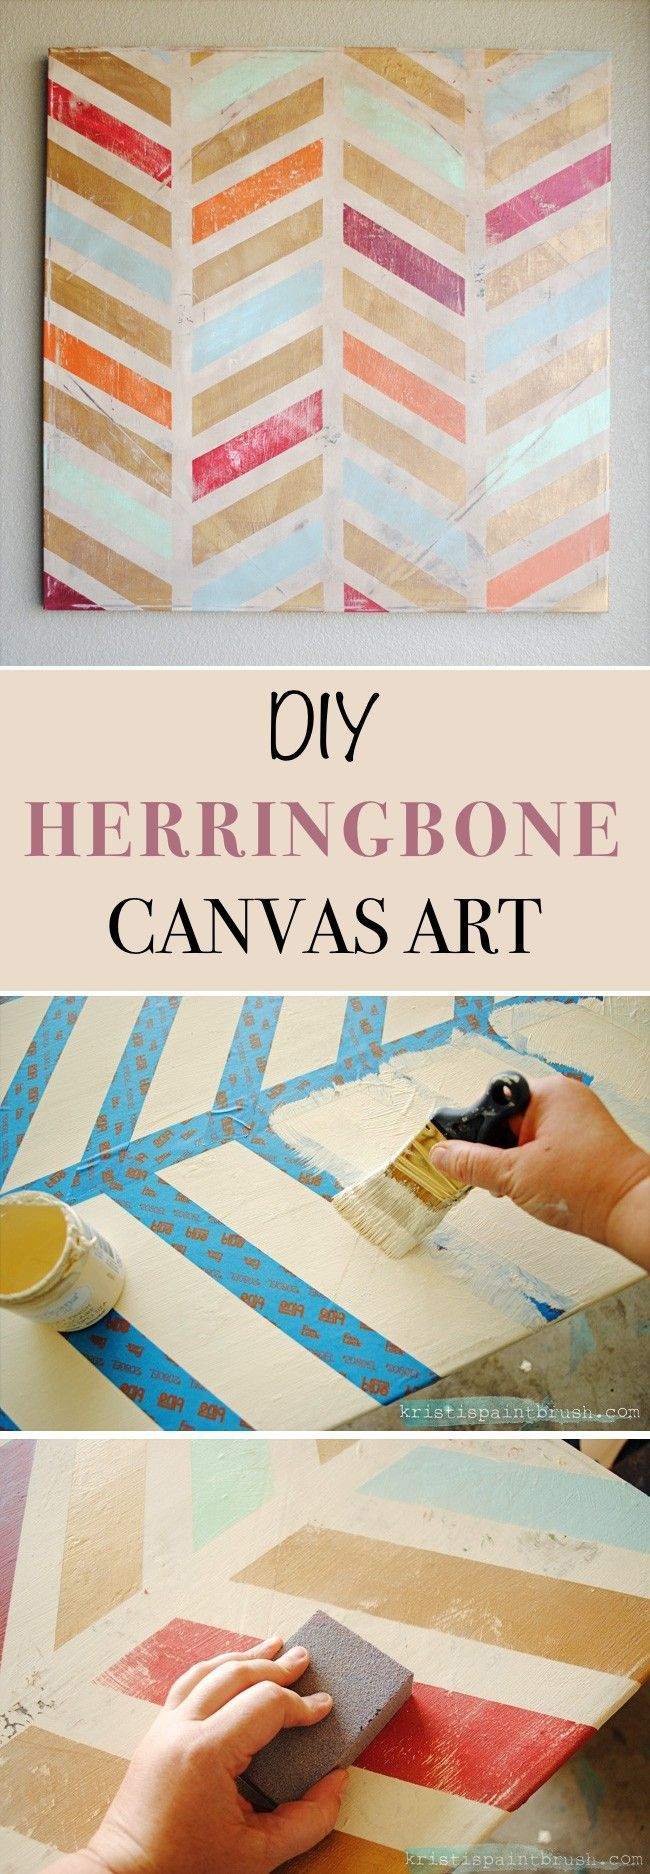 Diy herringbone canvas art diy canvas art is a great way to get diy herringbone canvas art diy canvas art is a great way to get unique art specific to your own style and its not a difficult thing to do pinterest solutioingenieria Images